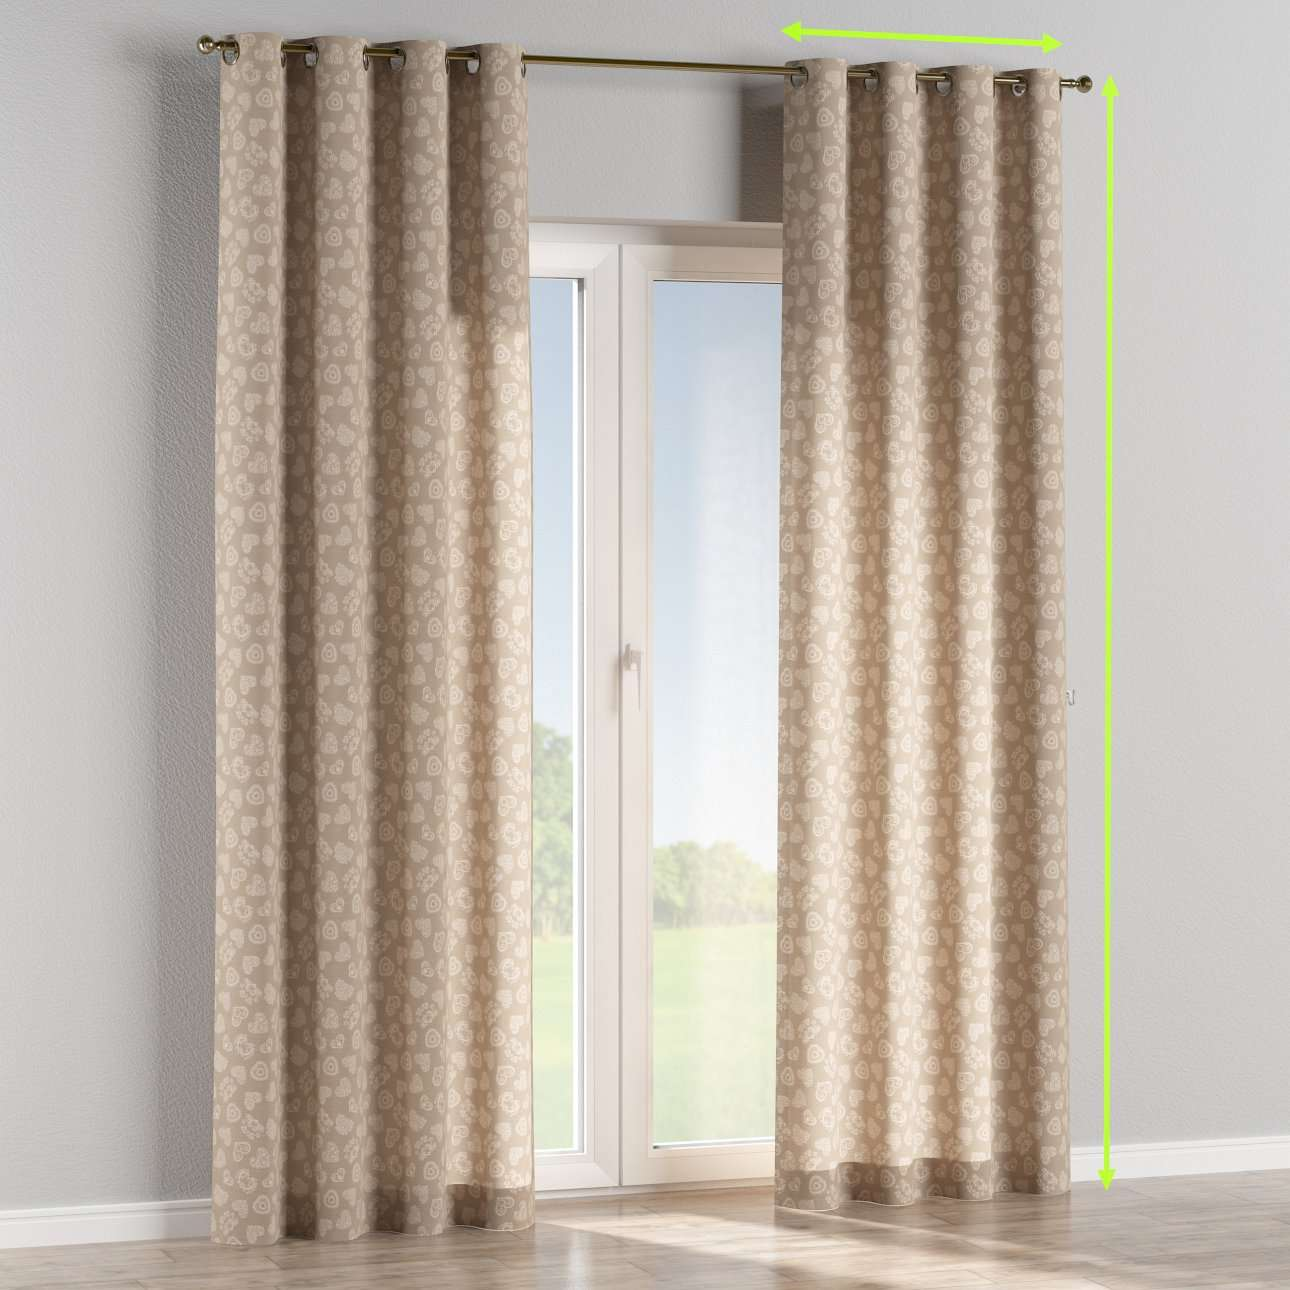 Eyelet curtains in collection Flowers, fabric: 140-56